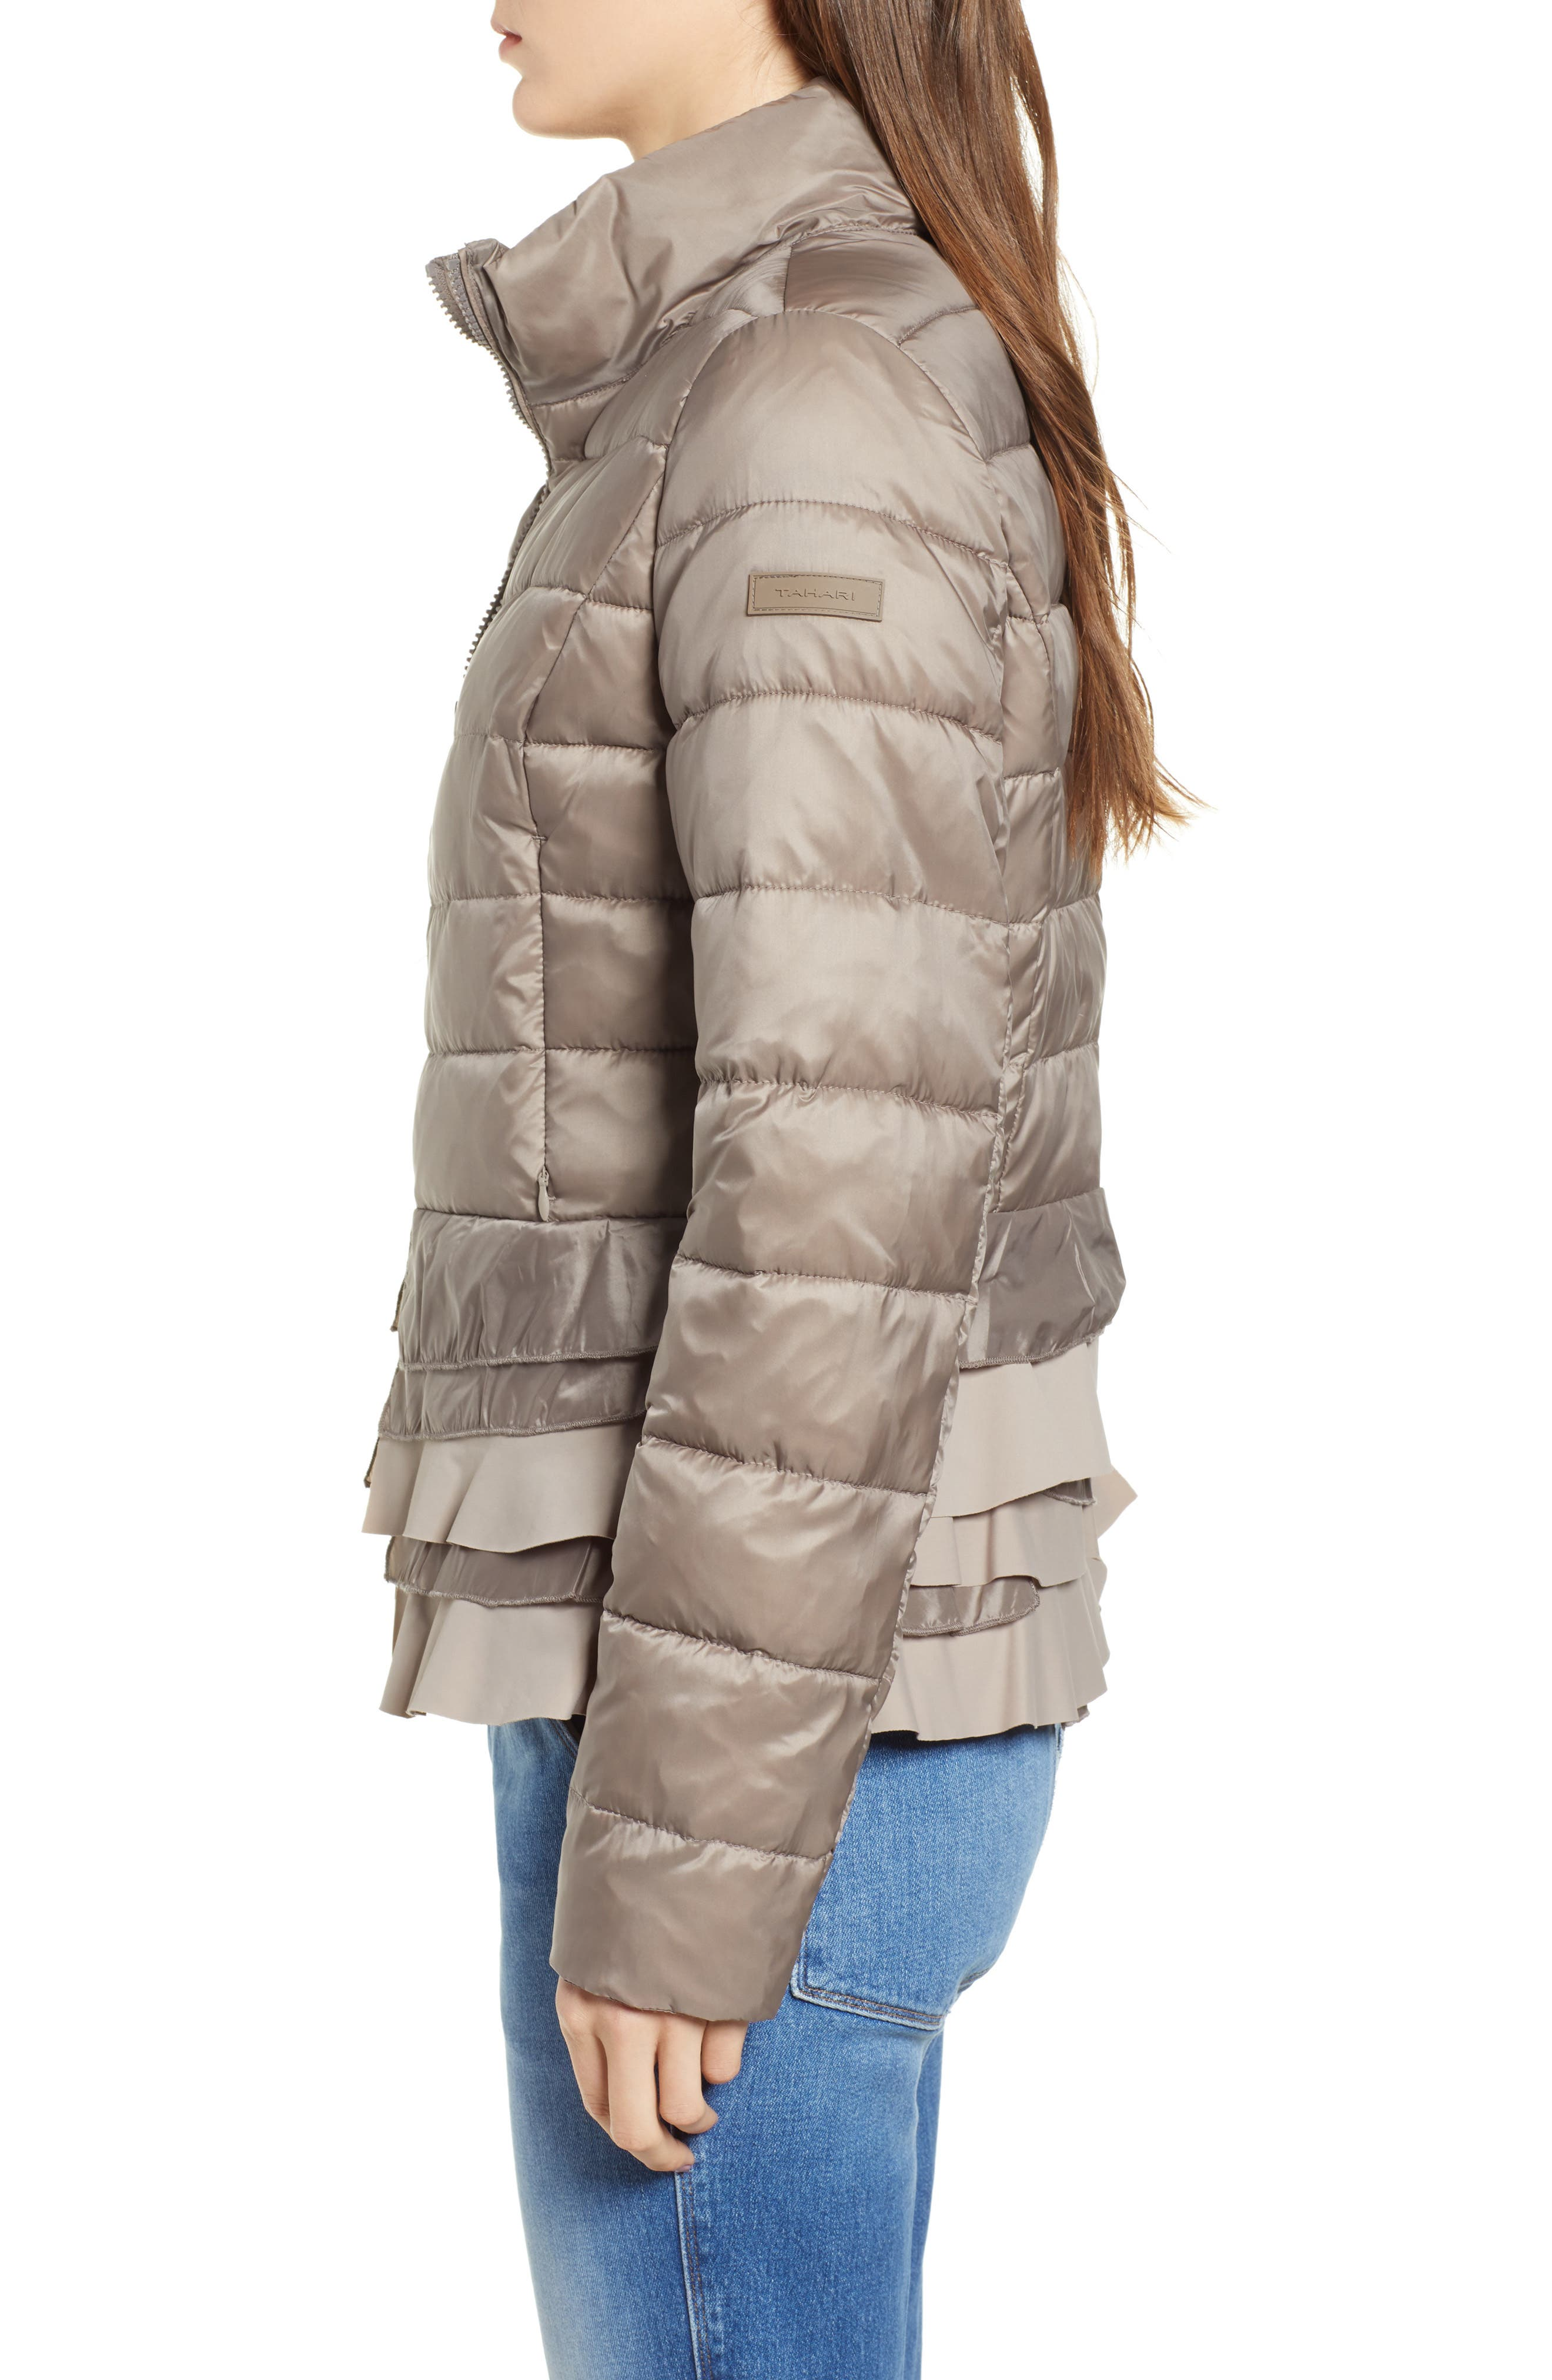 TAHARI, Zoey Ruffle Hem Puffer Jacket, Alternate thumbnail 4, color, TRUFFLE